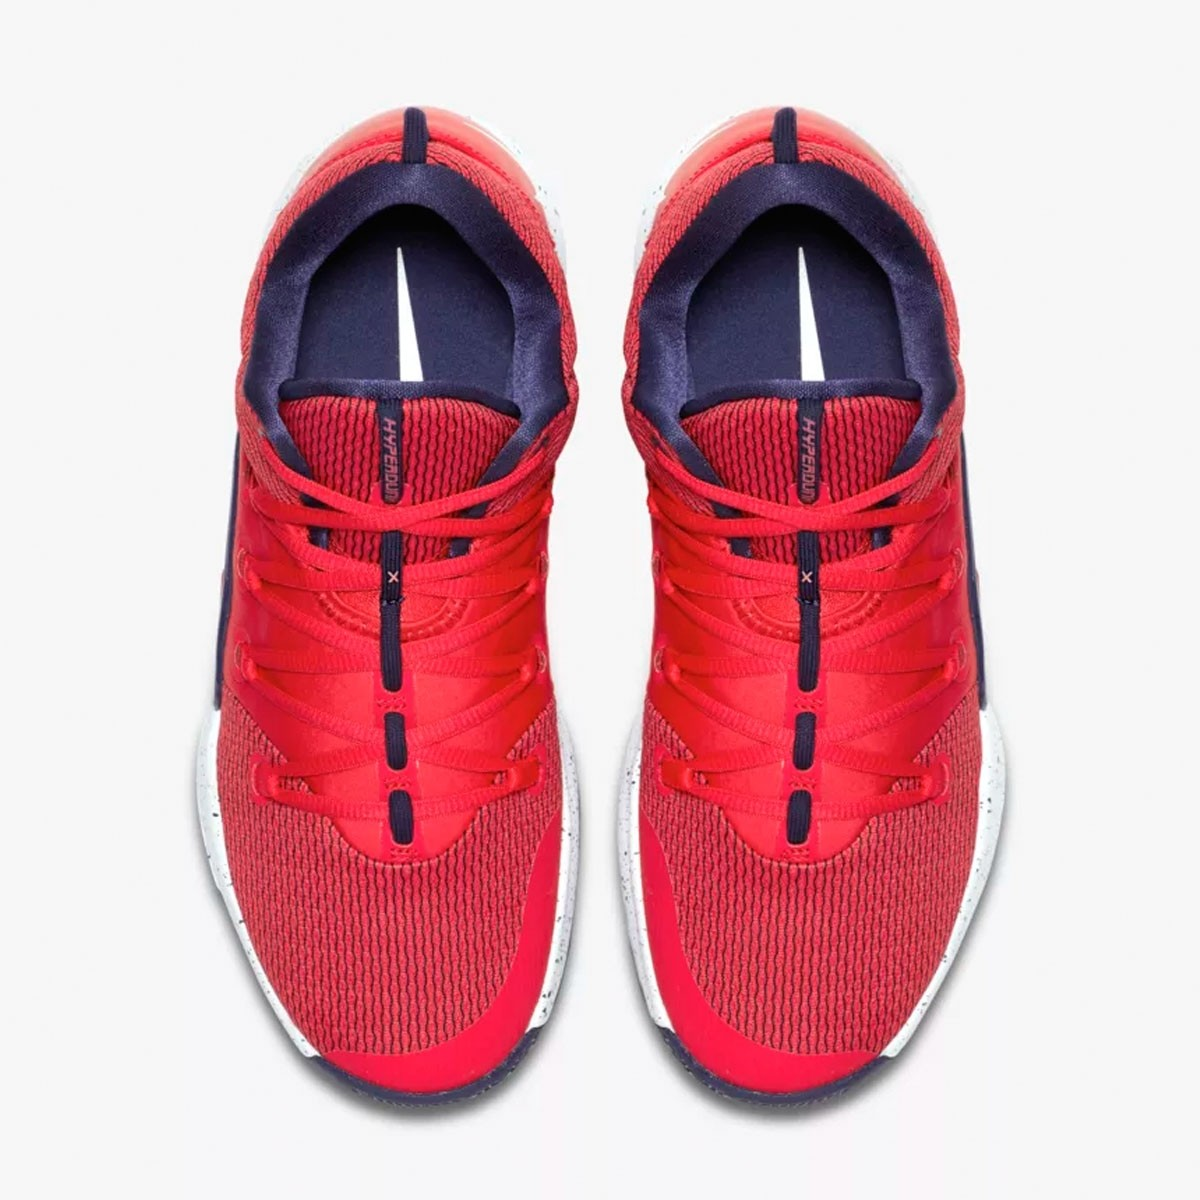 0467f19ed1ef Buy Nike Hyperdunk X Low 2018 GS  Red Navy  Basketball shoes   sneakers